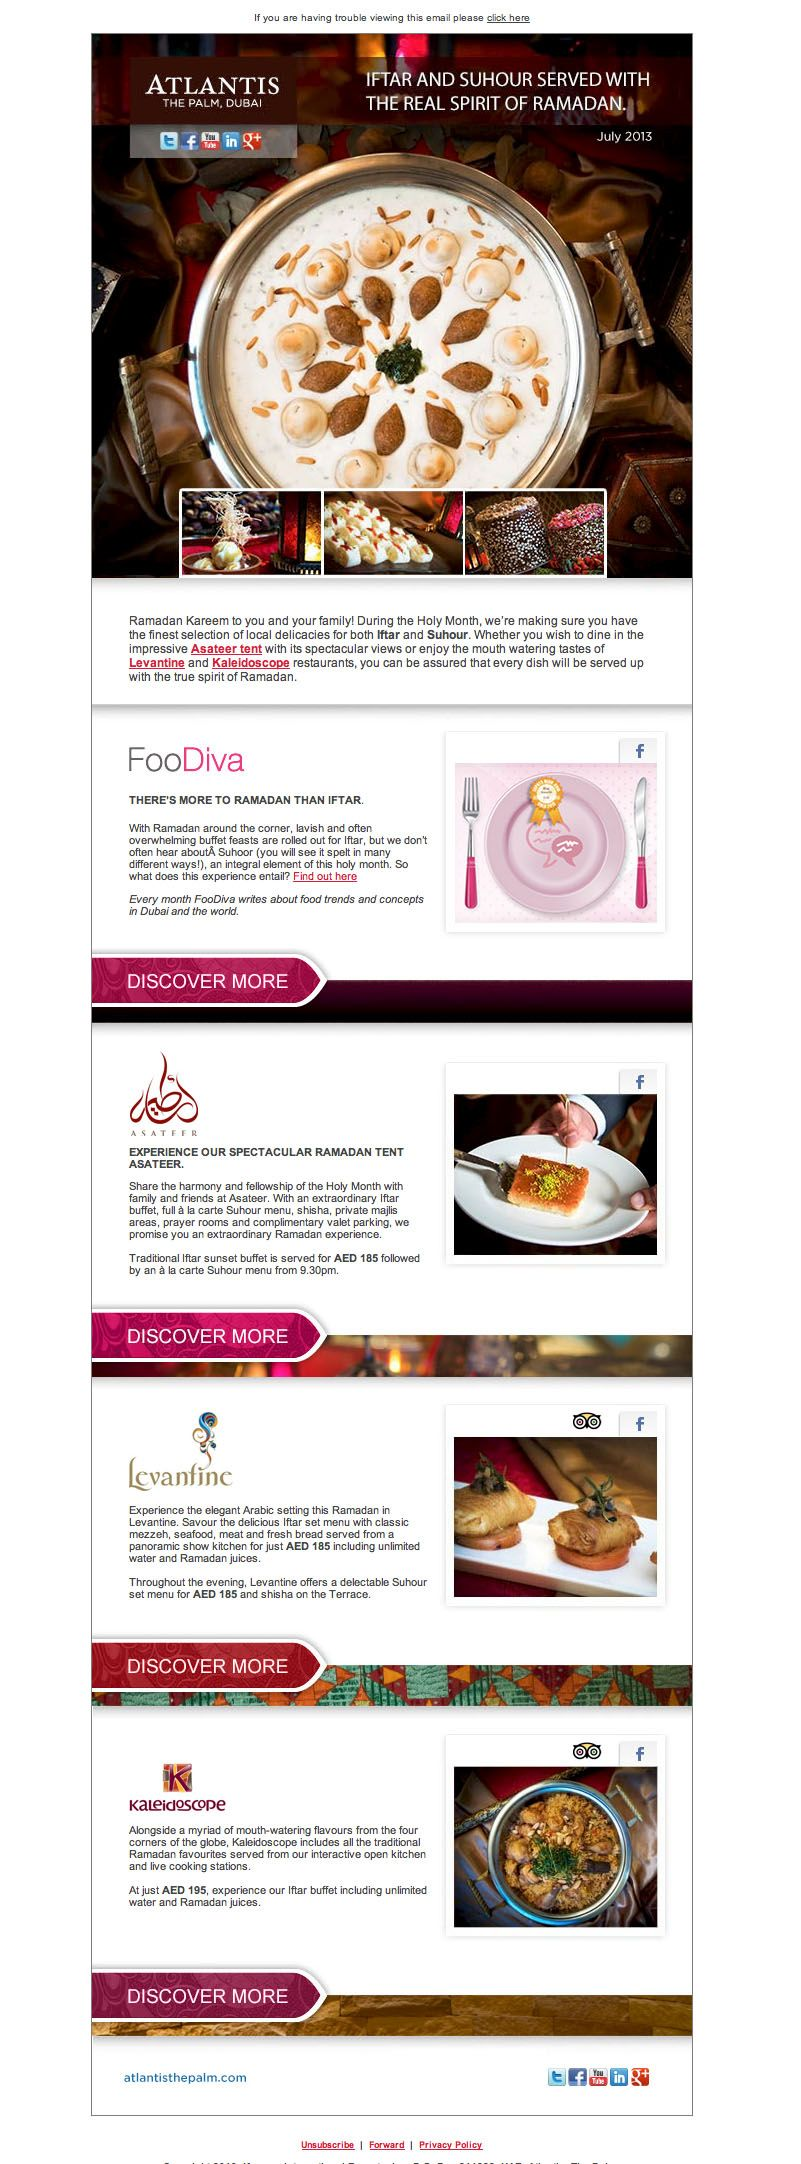 Images we shot for Atlantis Hotel, featured in their email campaign. #dubai #foodphotography #professionalphotographer